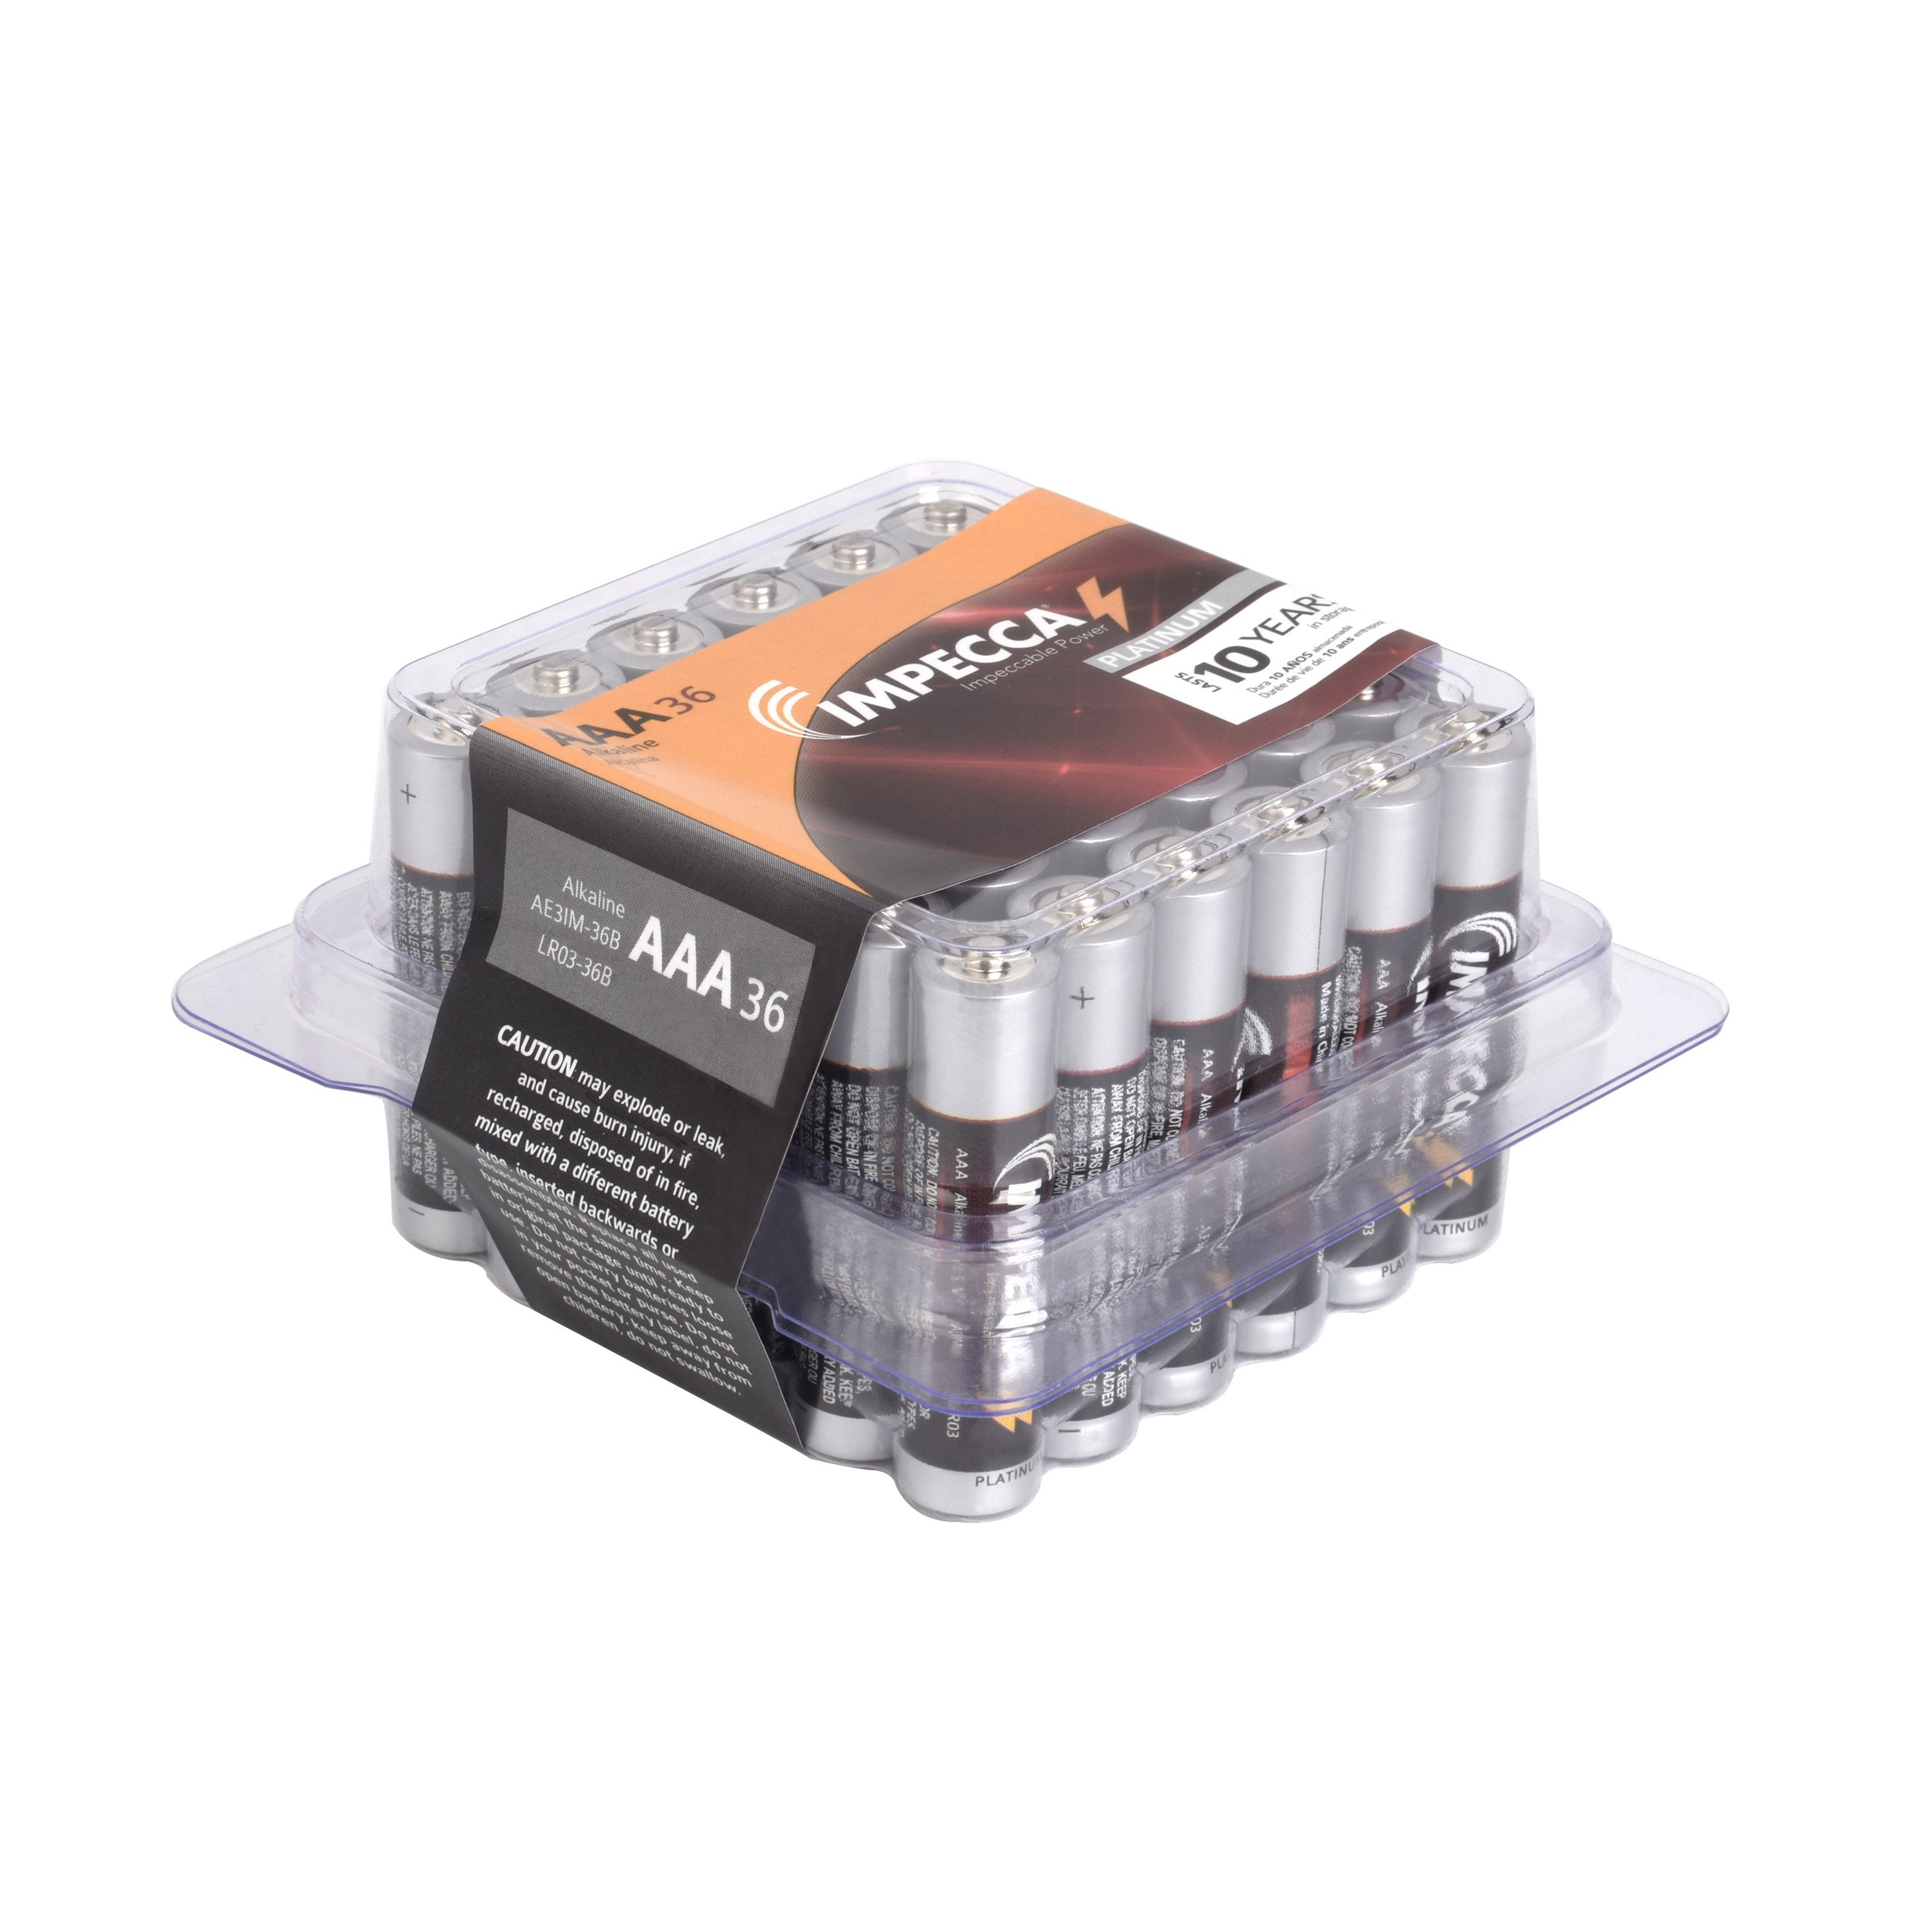 IMPECCA AAA Batteries, All Purpose Alkaline Batteries (36-Pack) High Performance AAA Battery Long Lasting Shelf Life and Leak Resistant 36-Count LR3 - Platinum Series